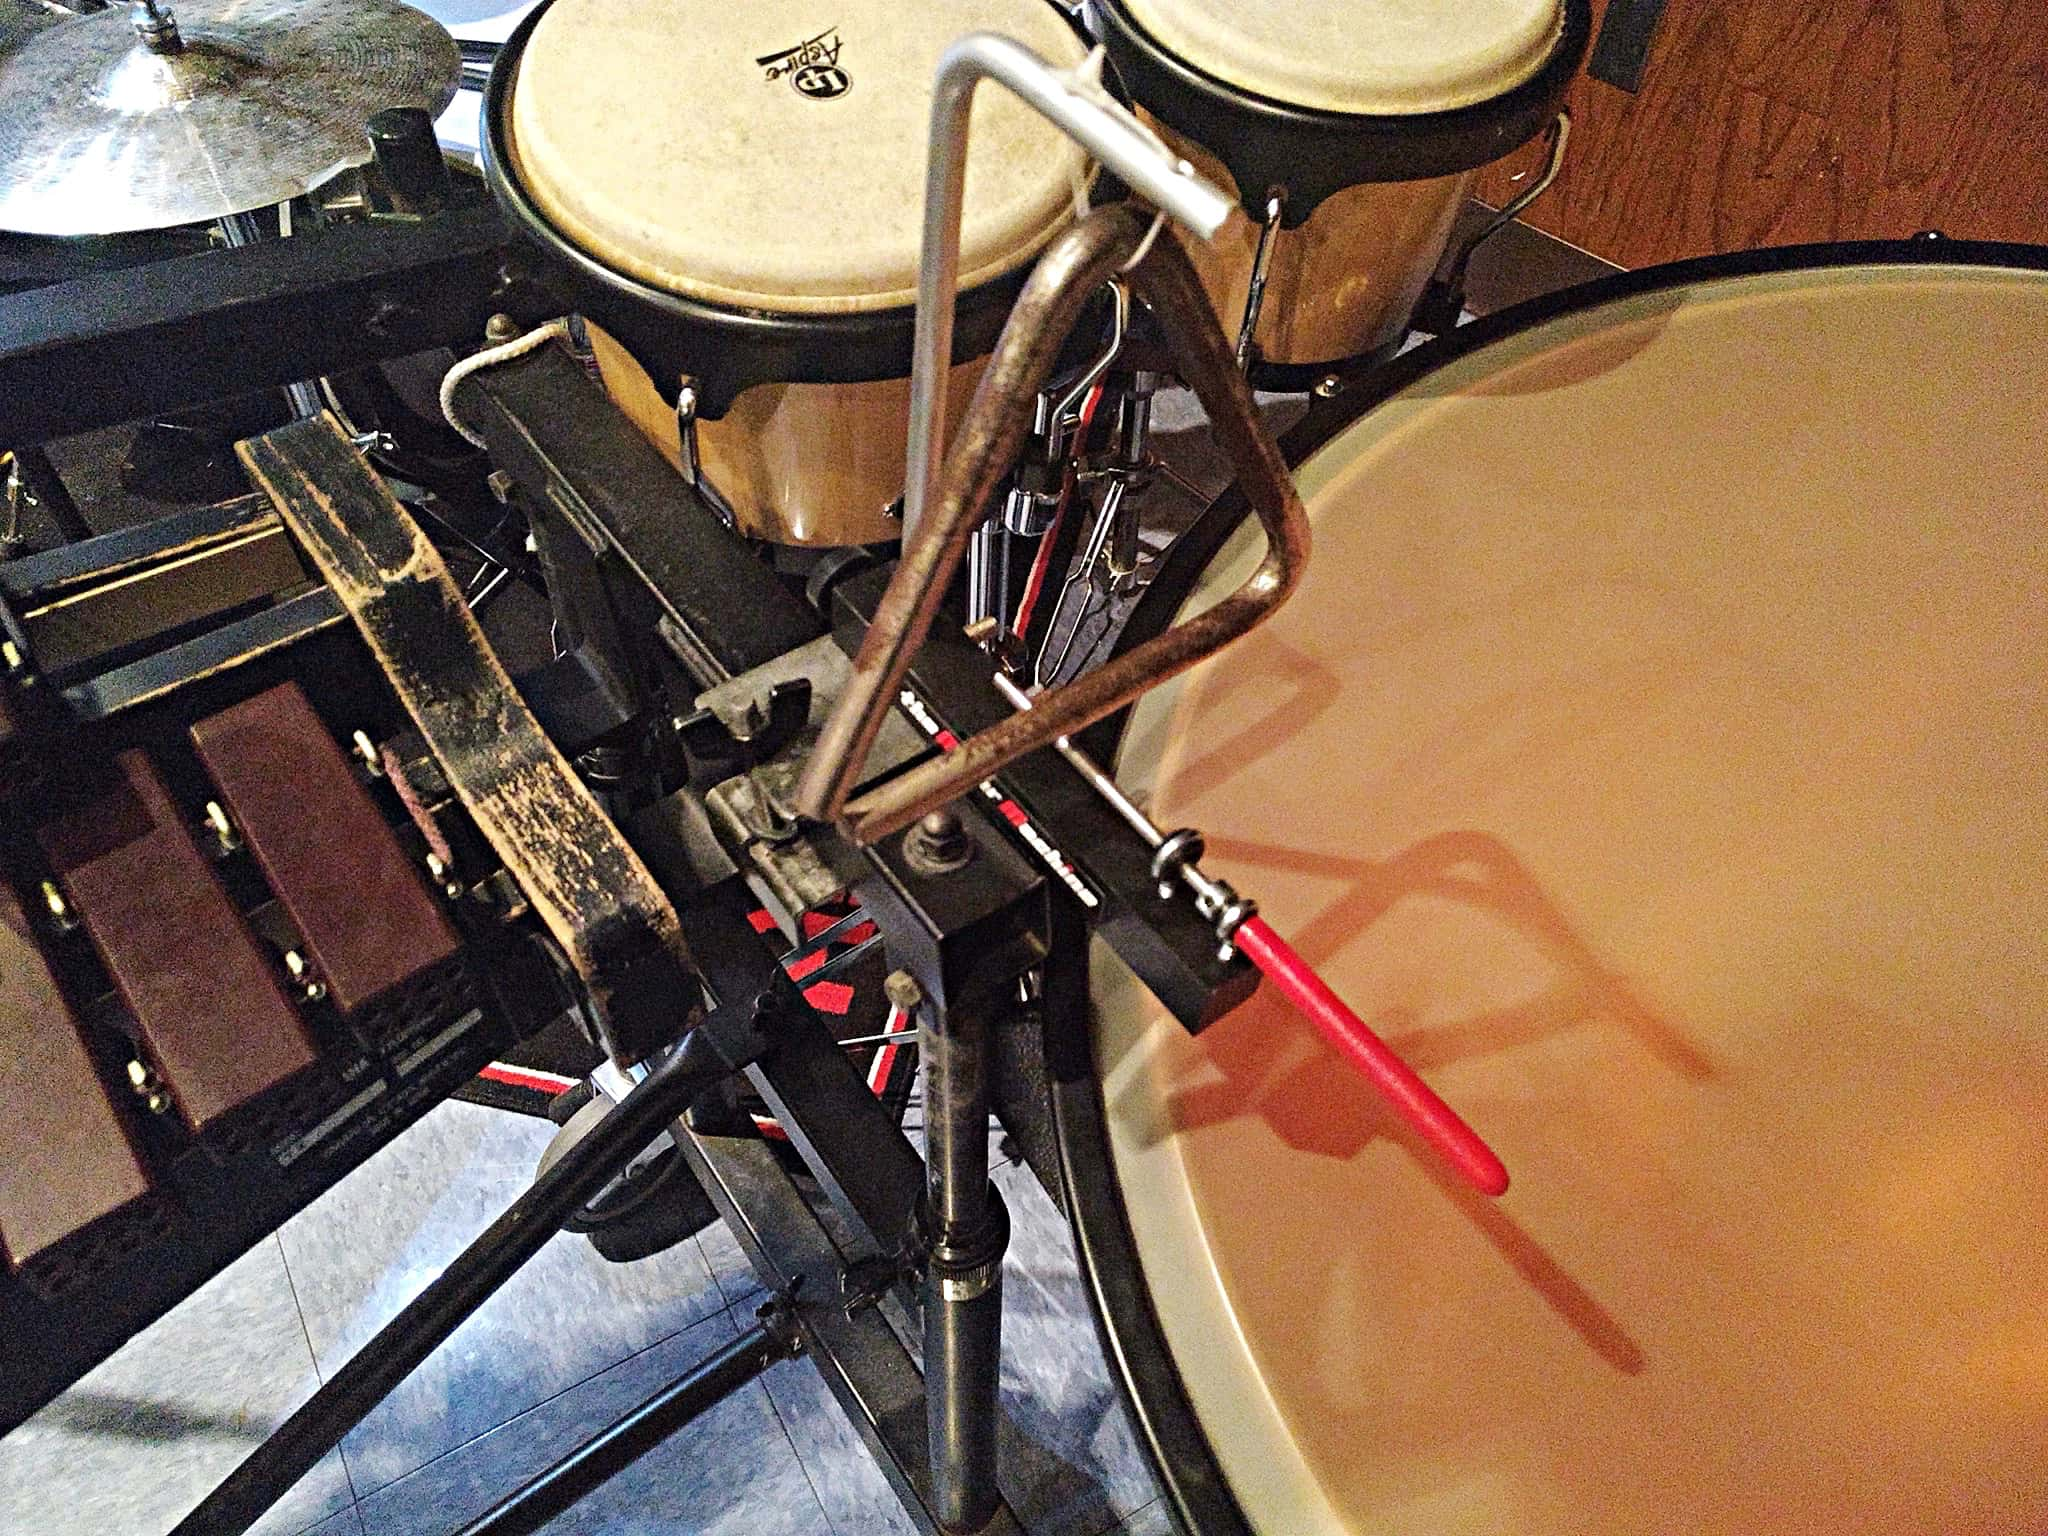 Will Marinelli's percussion setup for the Hightstown High School's production of Pippin in Hightstown, New Jersey.